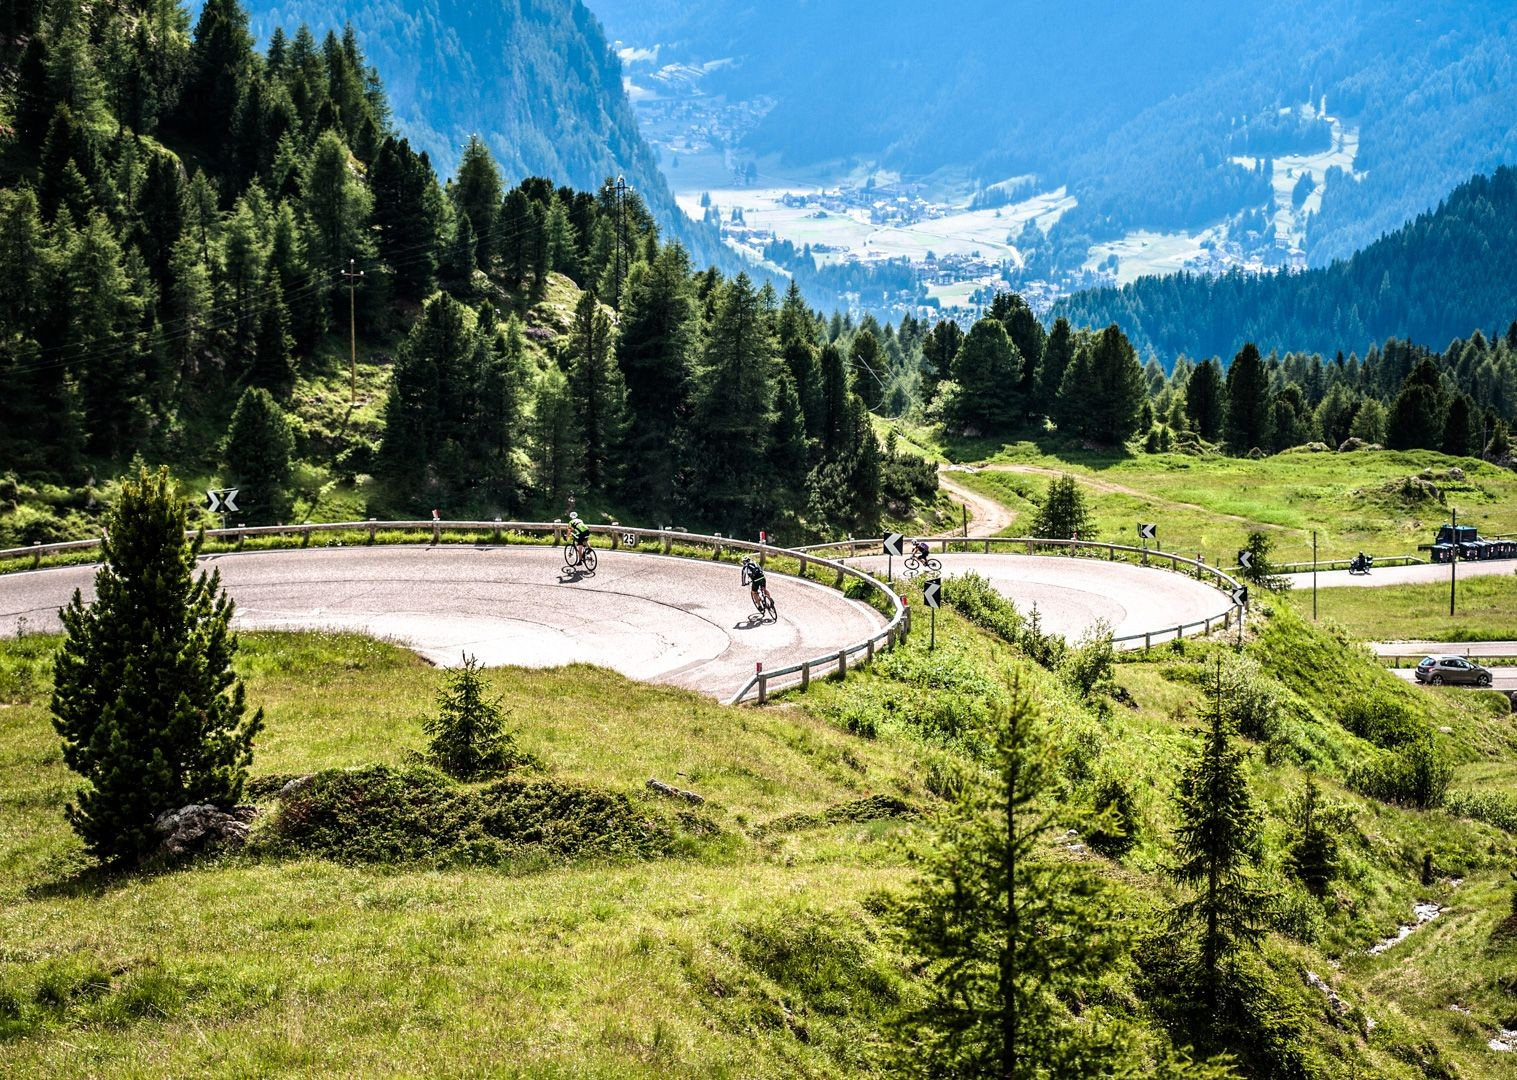 climb-the-zoncalan-italian-dolomites-guided-road-cycling.jpg - Italy - Dolomiti Discoverer - Guided Road Cycling Holiday - Road Cycling